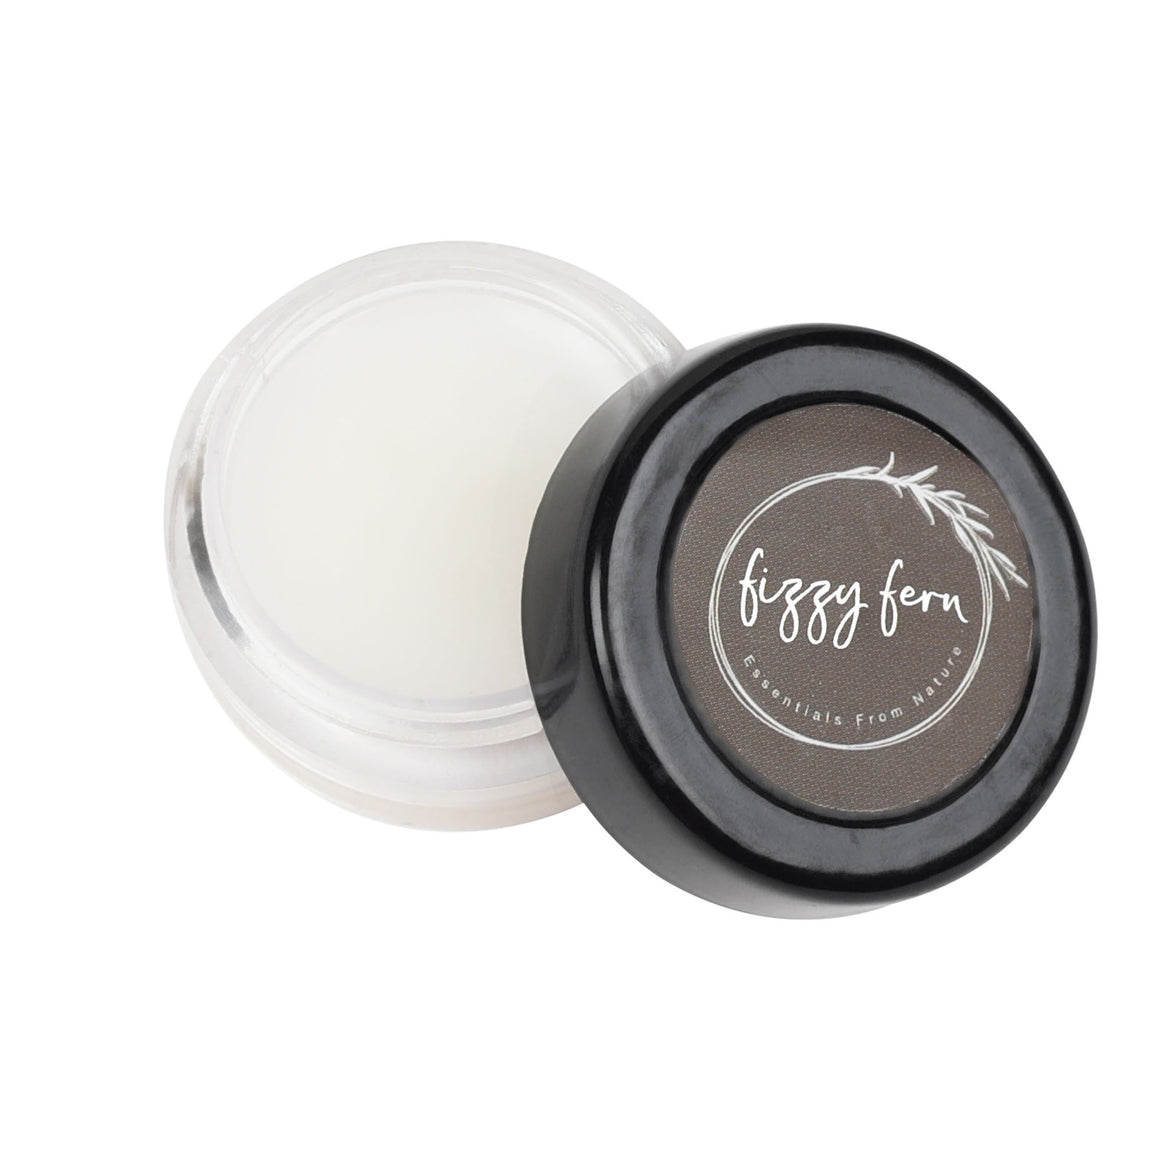 Shea Butter Vitamin E Lip Balm with Olive Oil, Almond Oil & Cocoa Butter